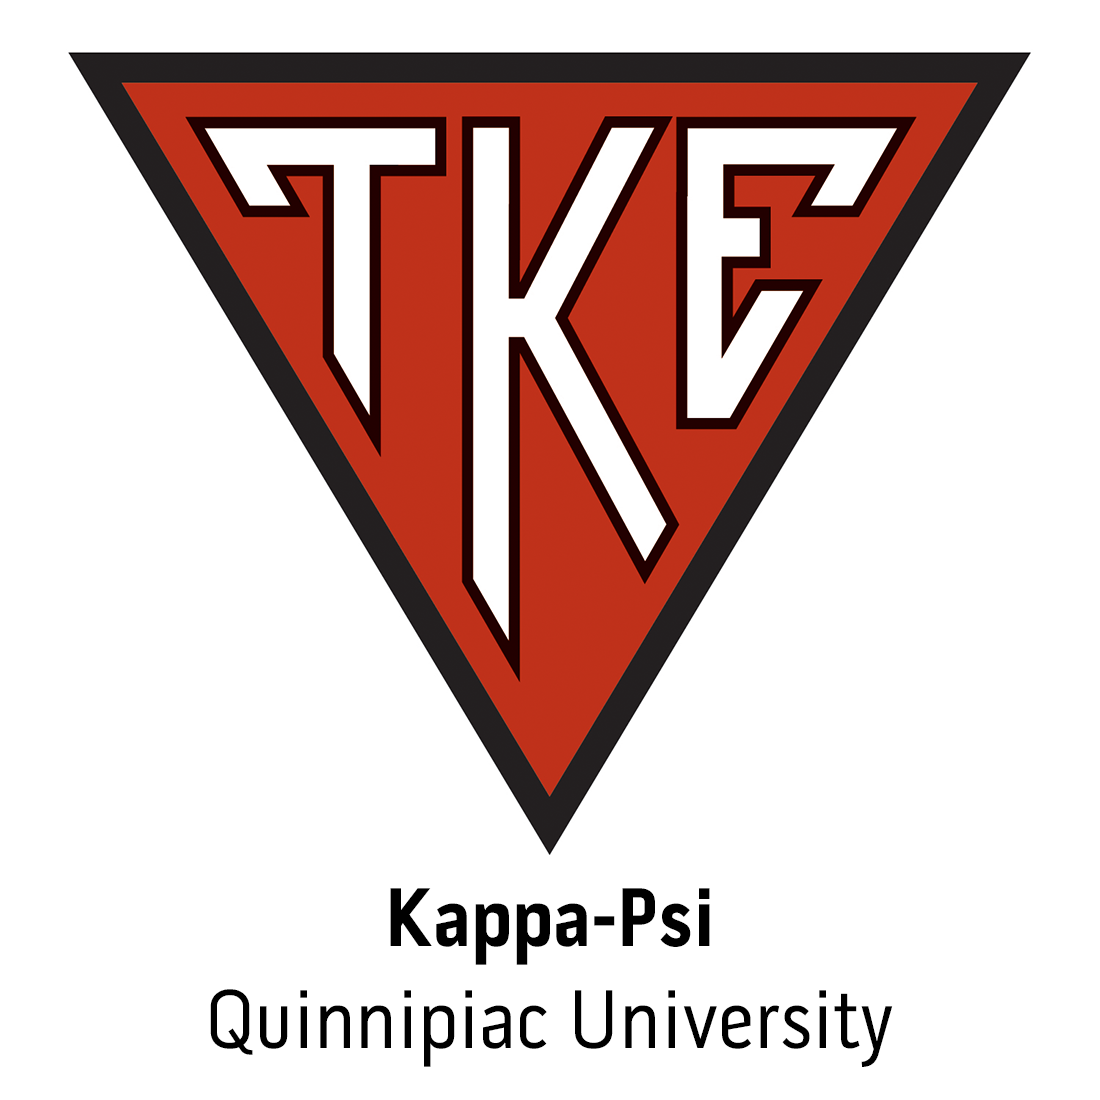 Kappa-Psi Chapter at Quinnipiac University